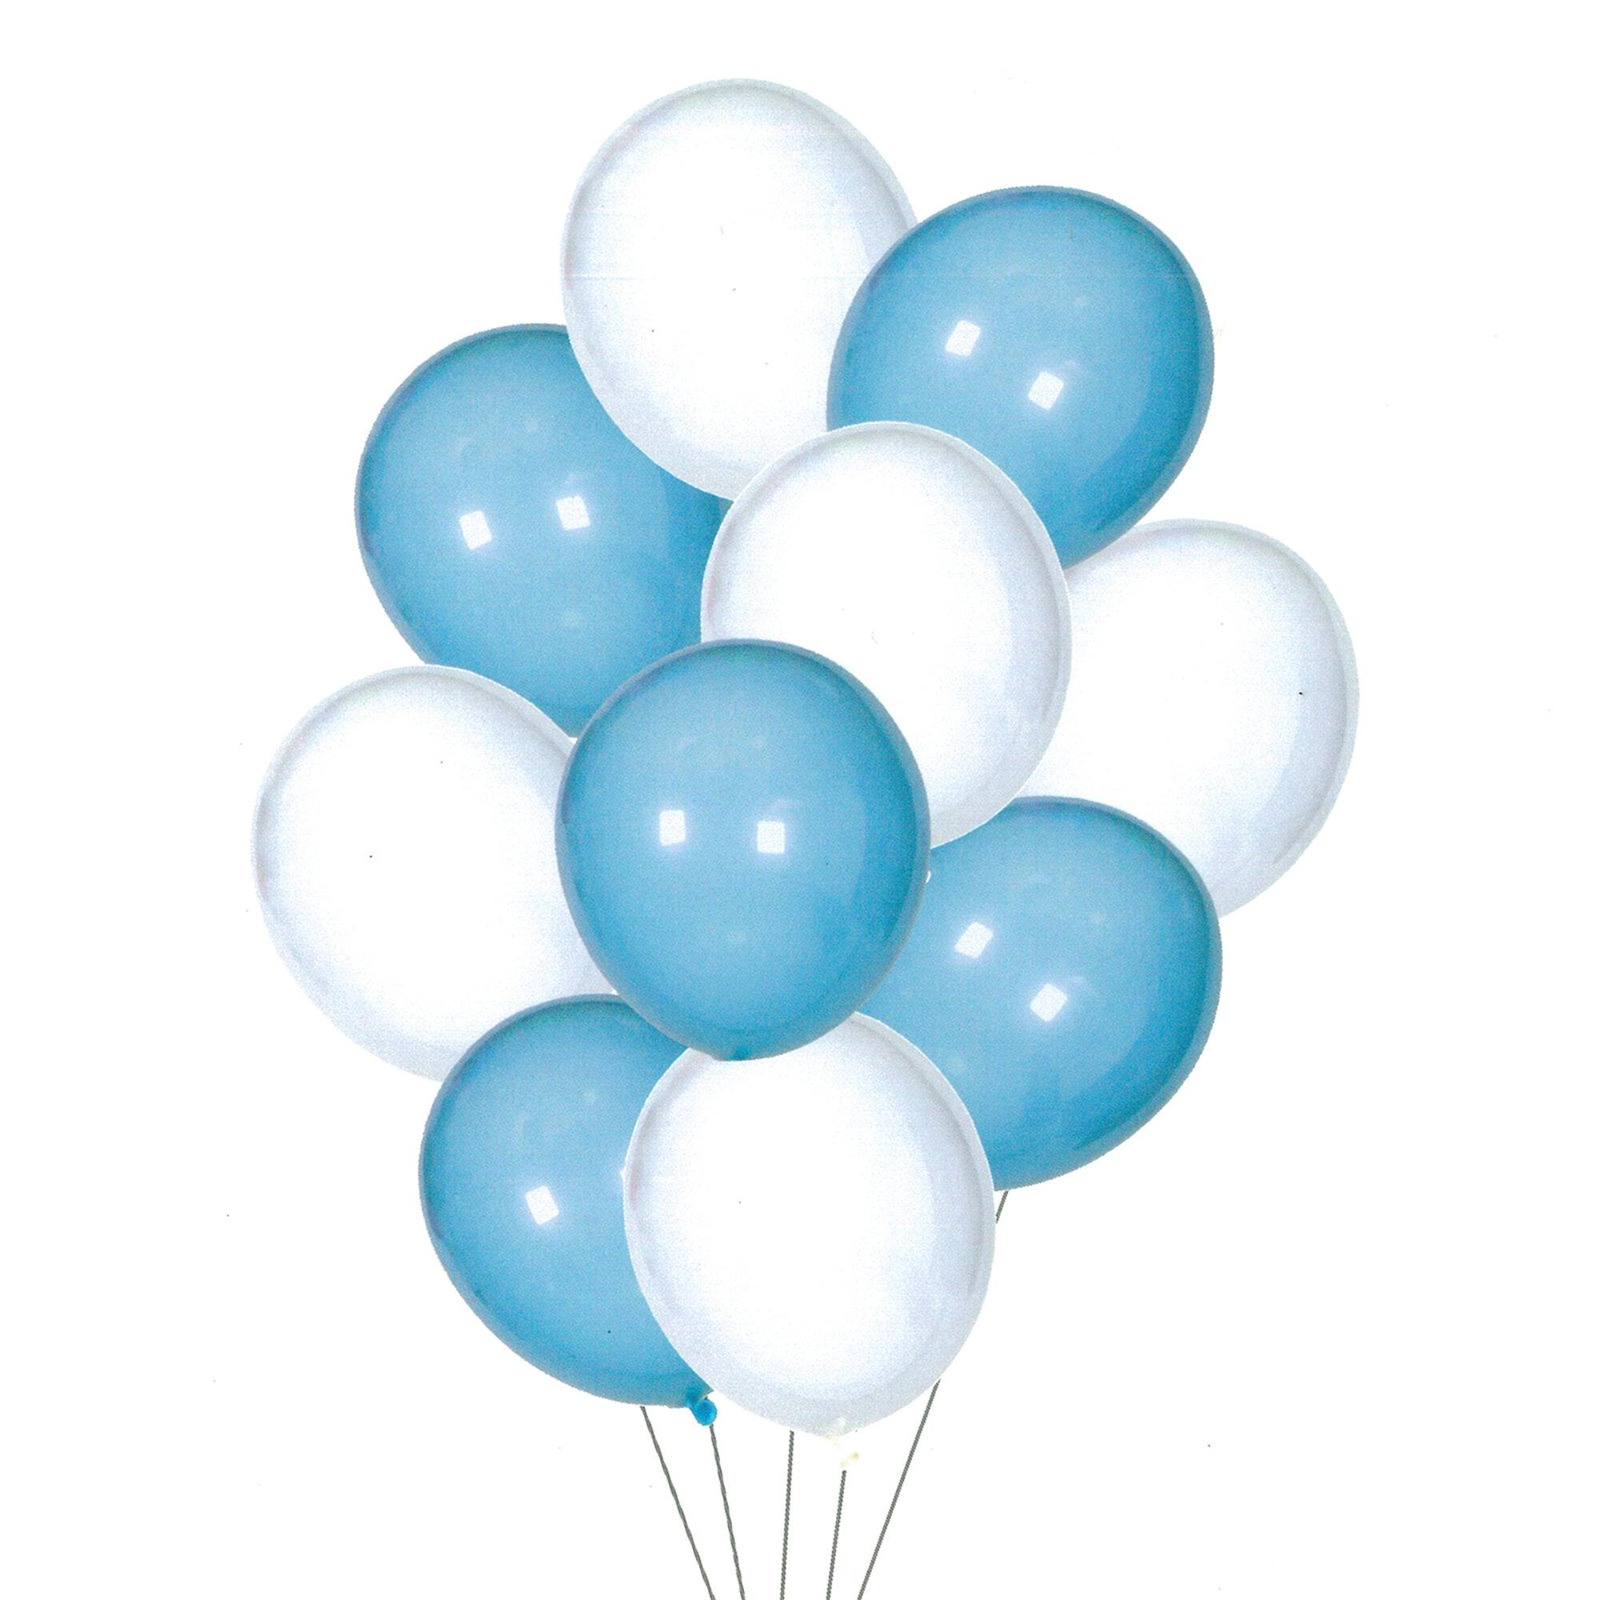 HOUZE Blue & White Balloons (Set of 10)